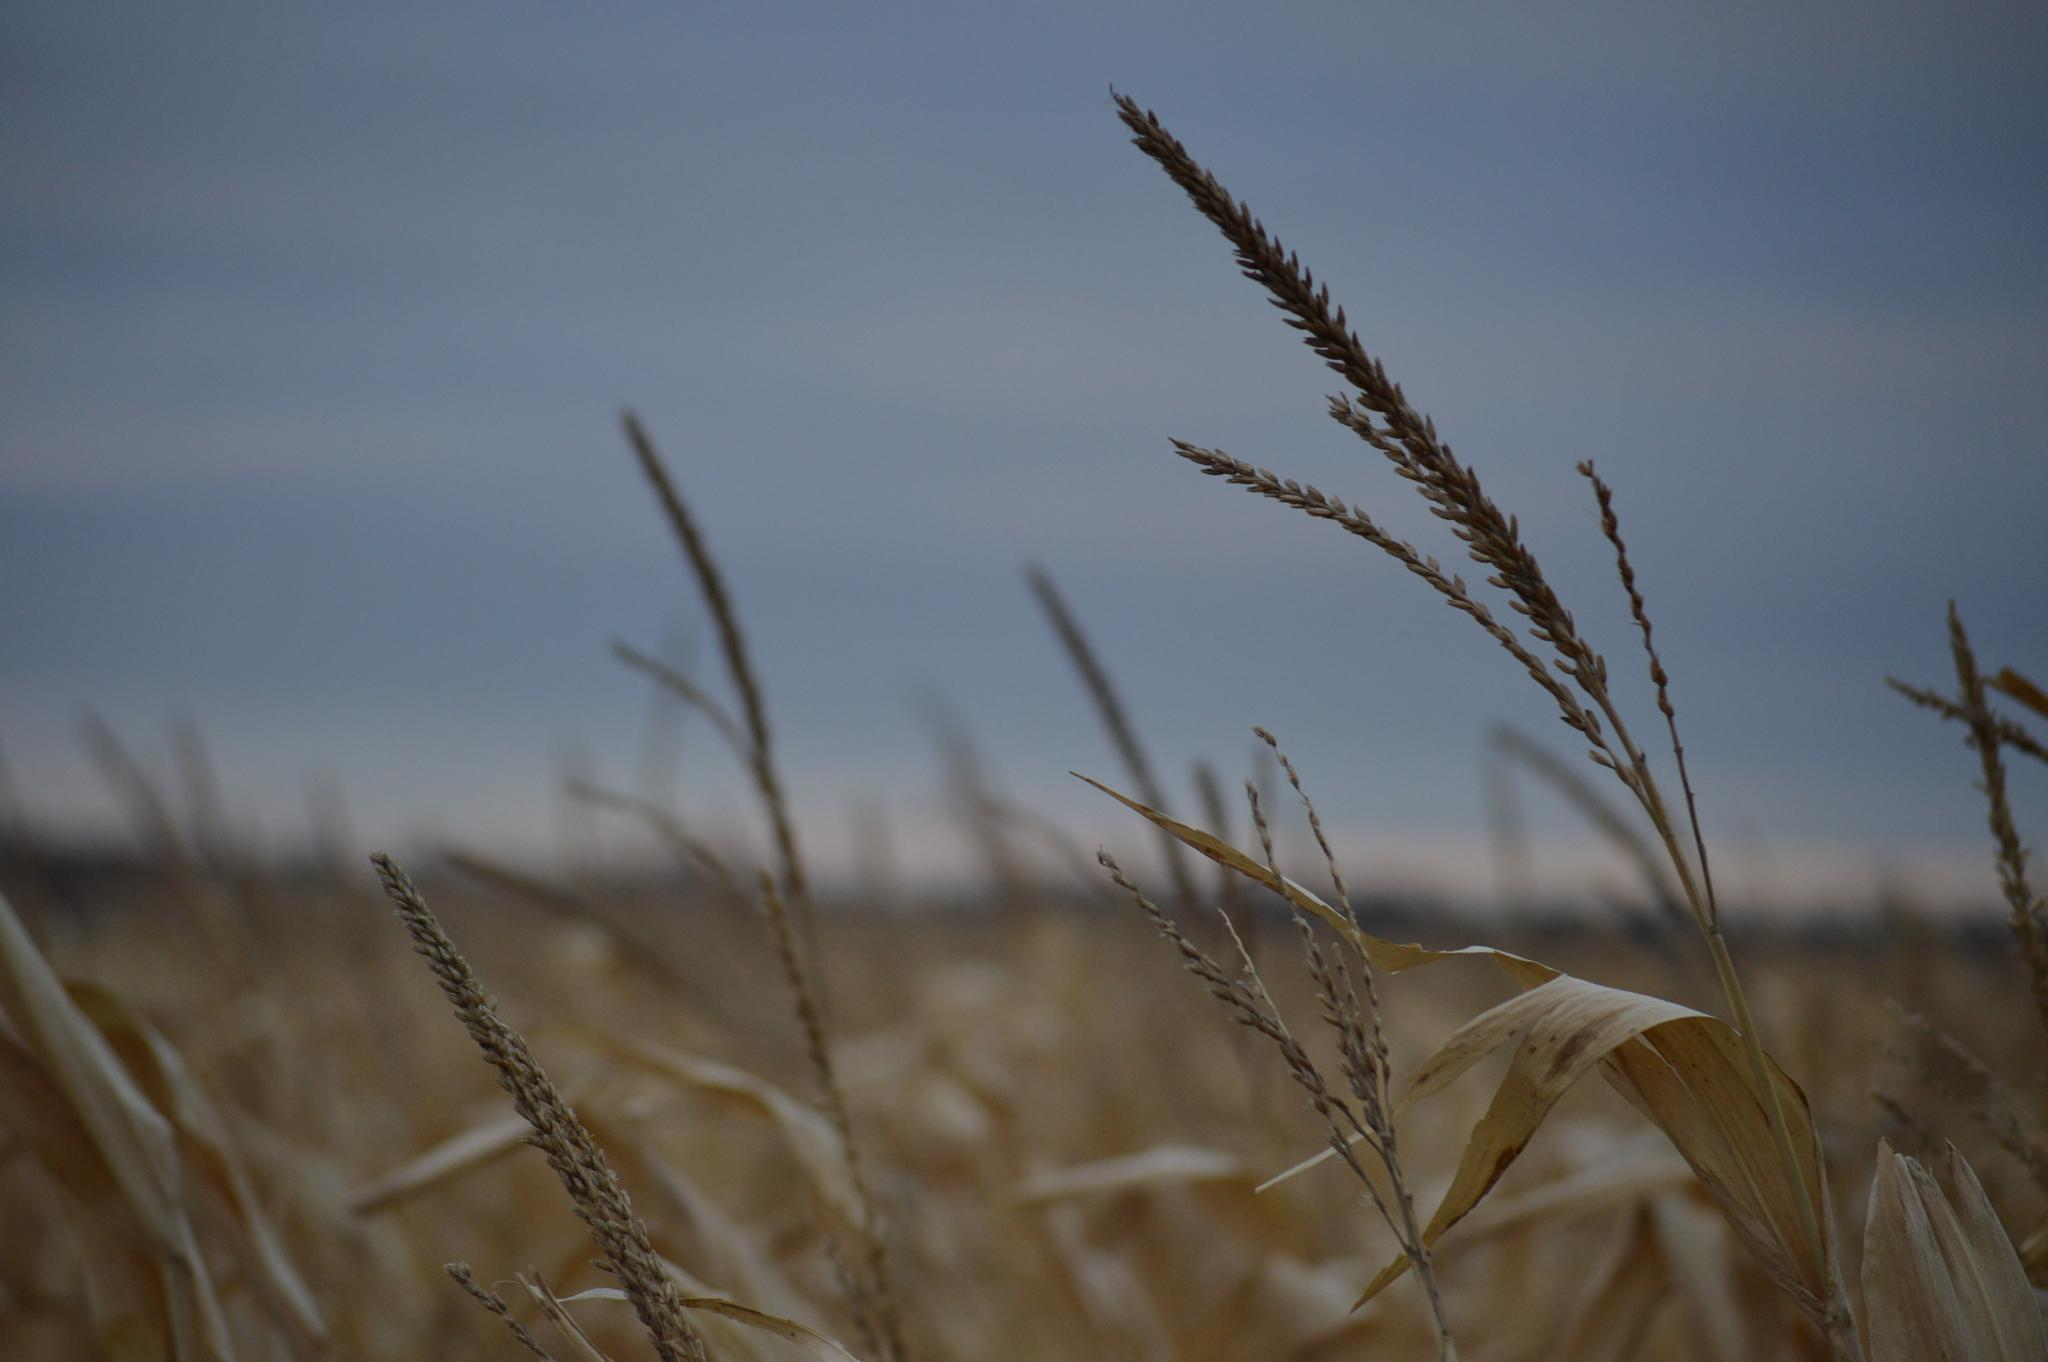 Corn fields during the harvest by drcarlosesparza